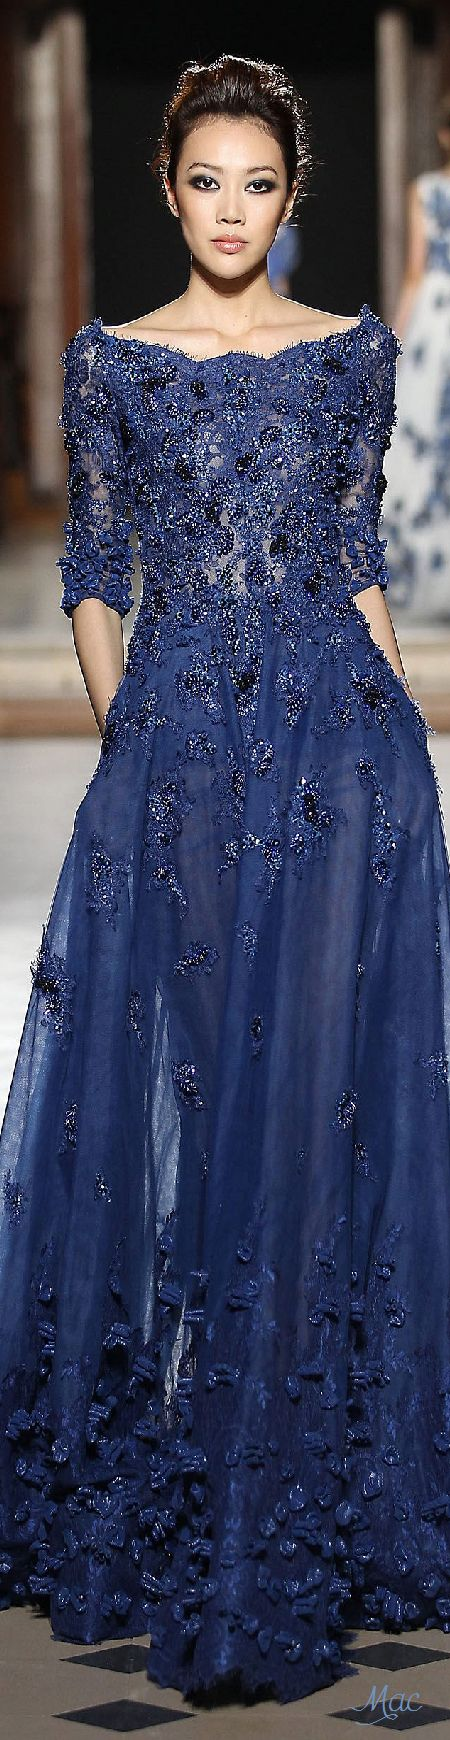 Fall 2015 couture tony ward j l dy navy blue wedding for Navy blue dresses for weddings